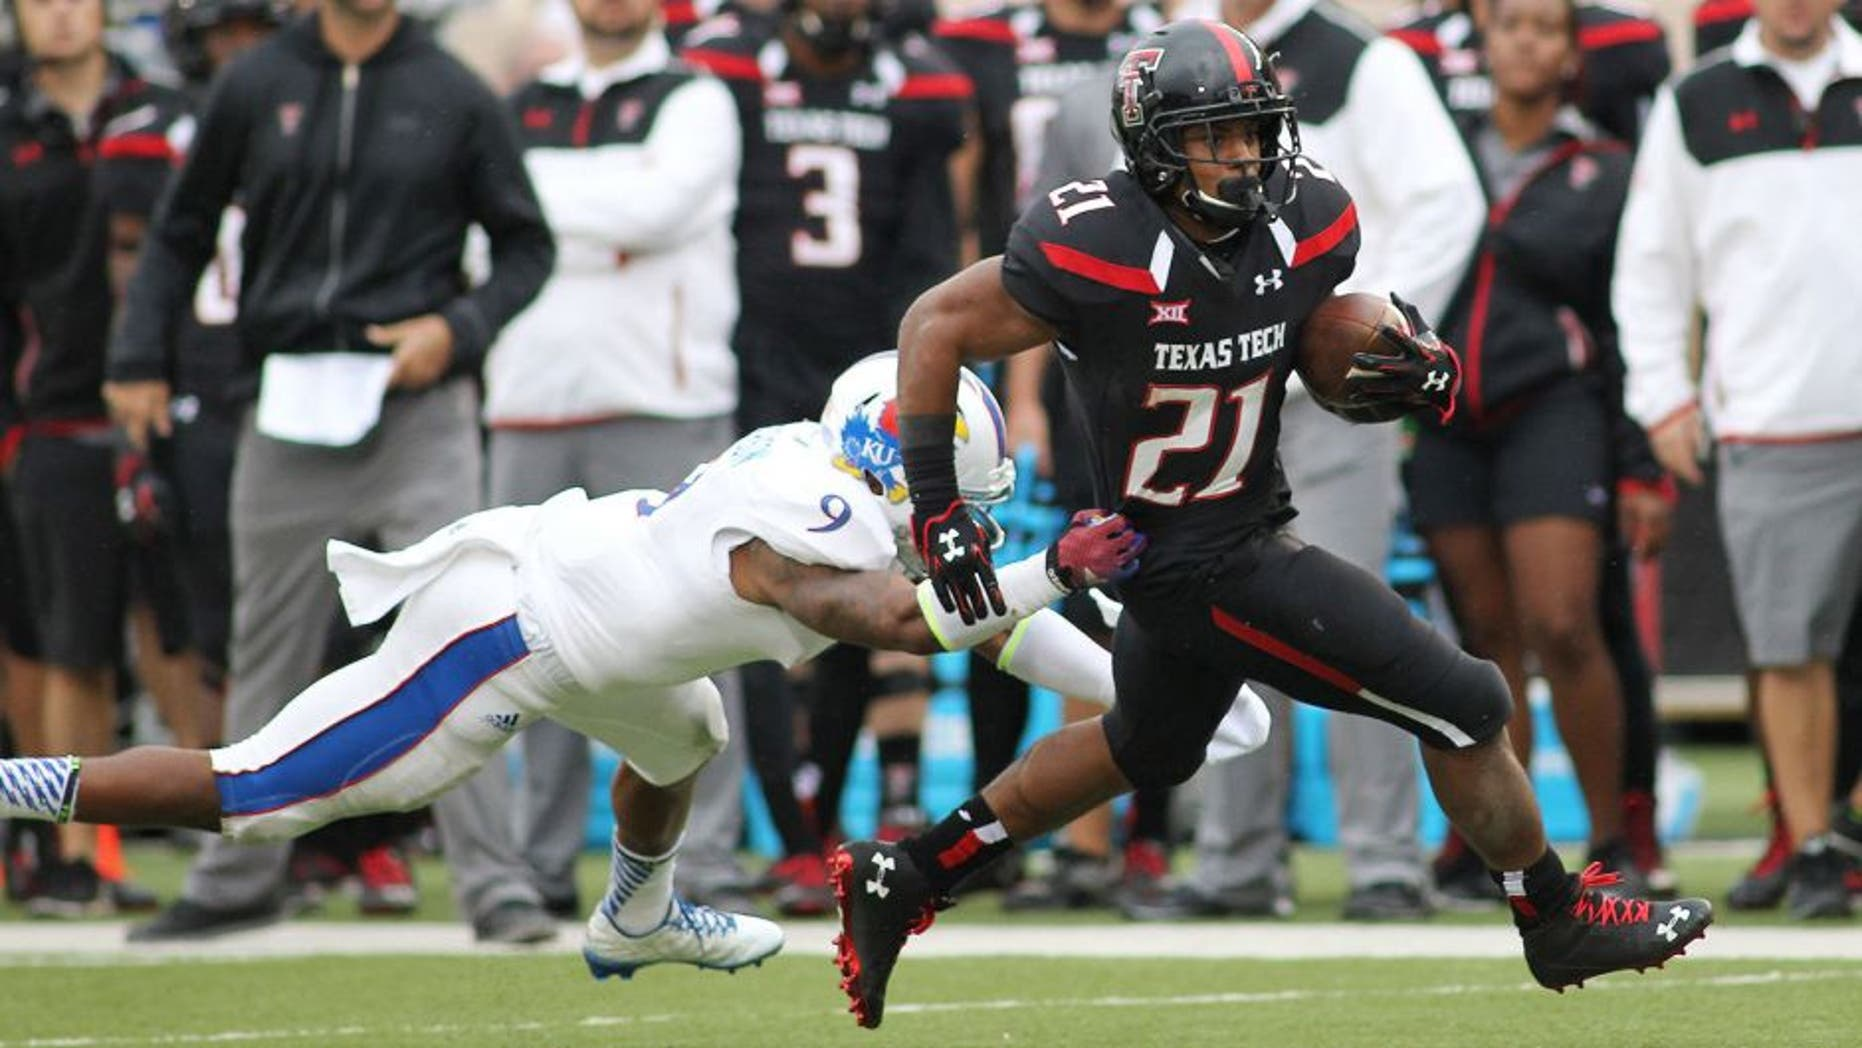 Oct 18, 2014; Lubbock, TX, USA; Kansas Jayhawks safety Fish Smithson (9) attempts to tackle Texas Tech Red Raiders running back DeAndre Washington (21) in the second half at Jones AT&T Stadium. Mandatory Credit: Michael C. Johnson-USA TODAY Sports